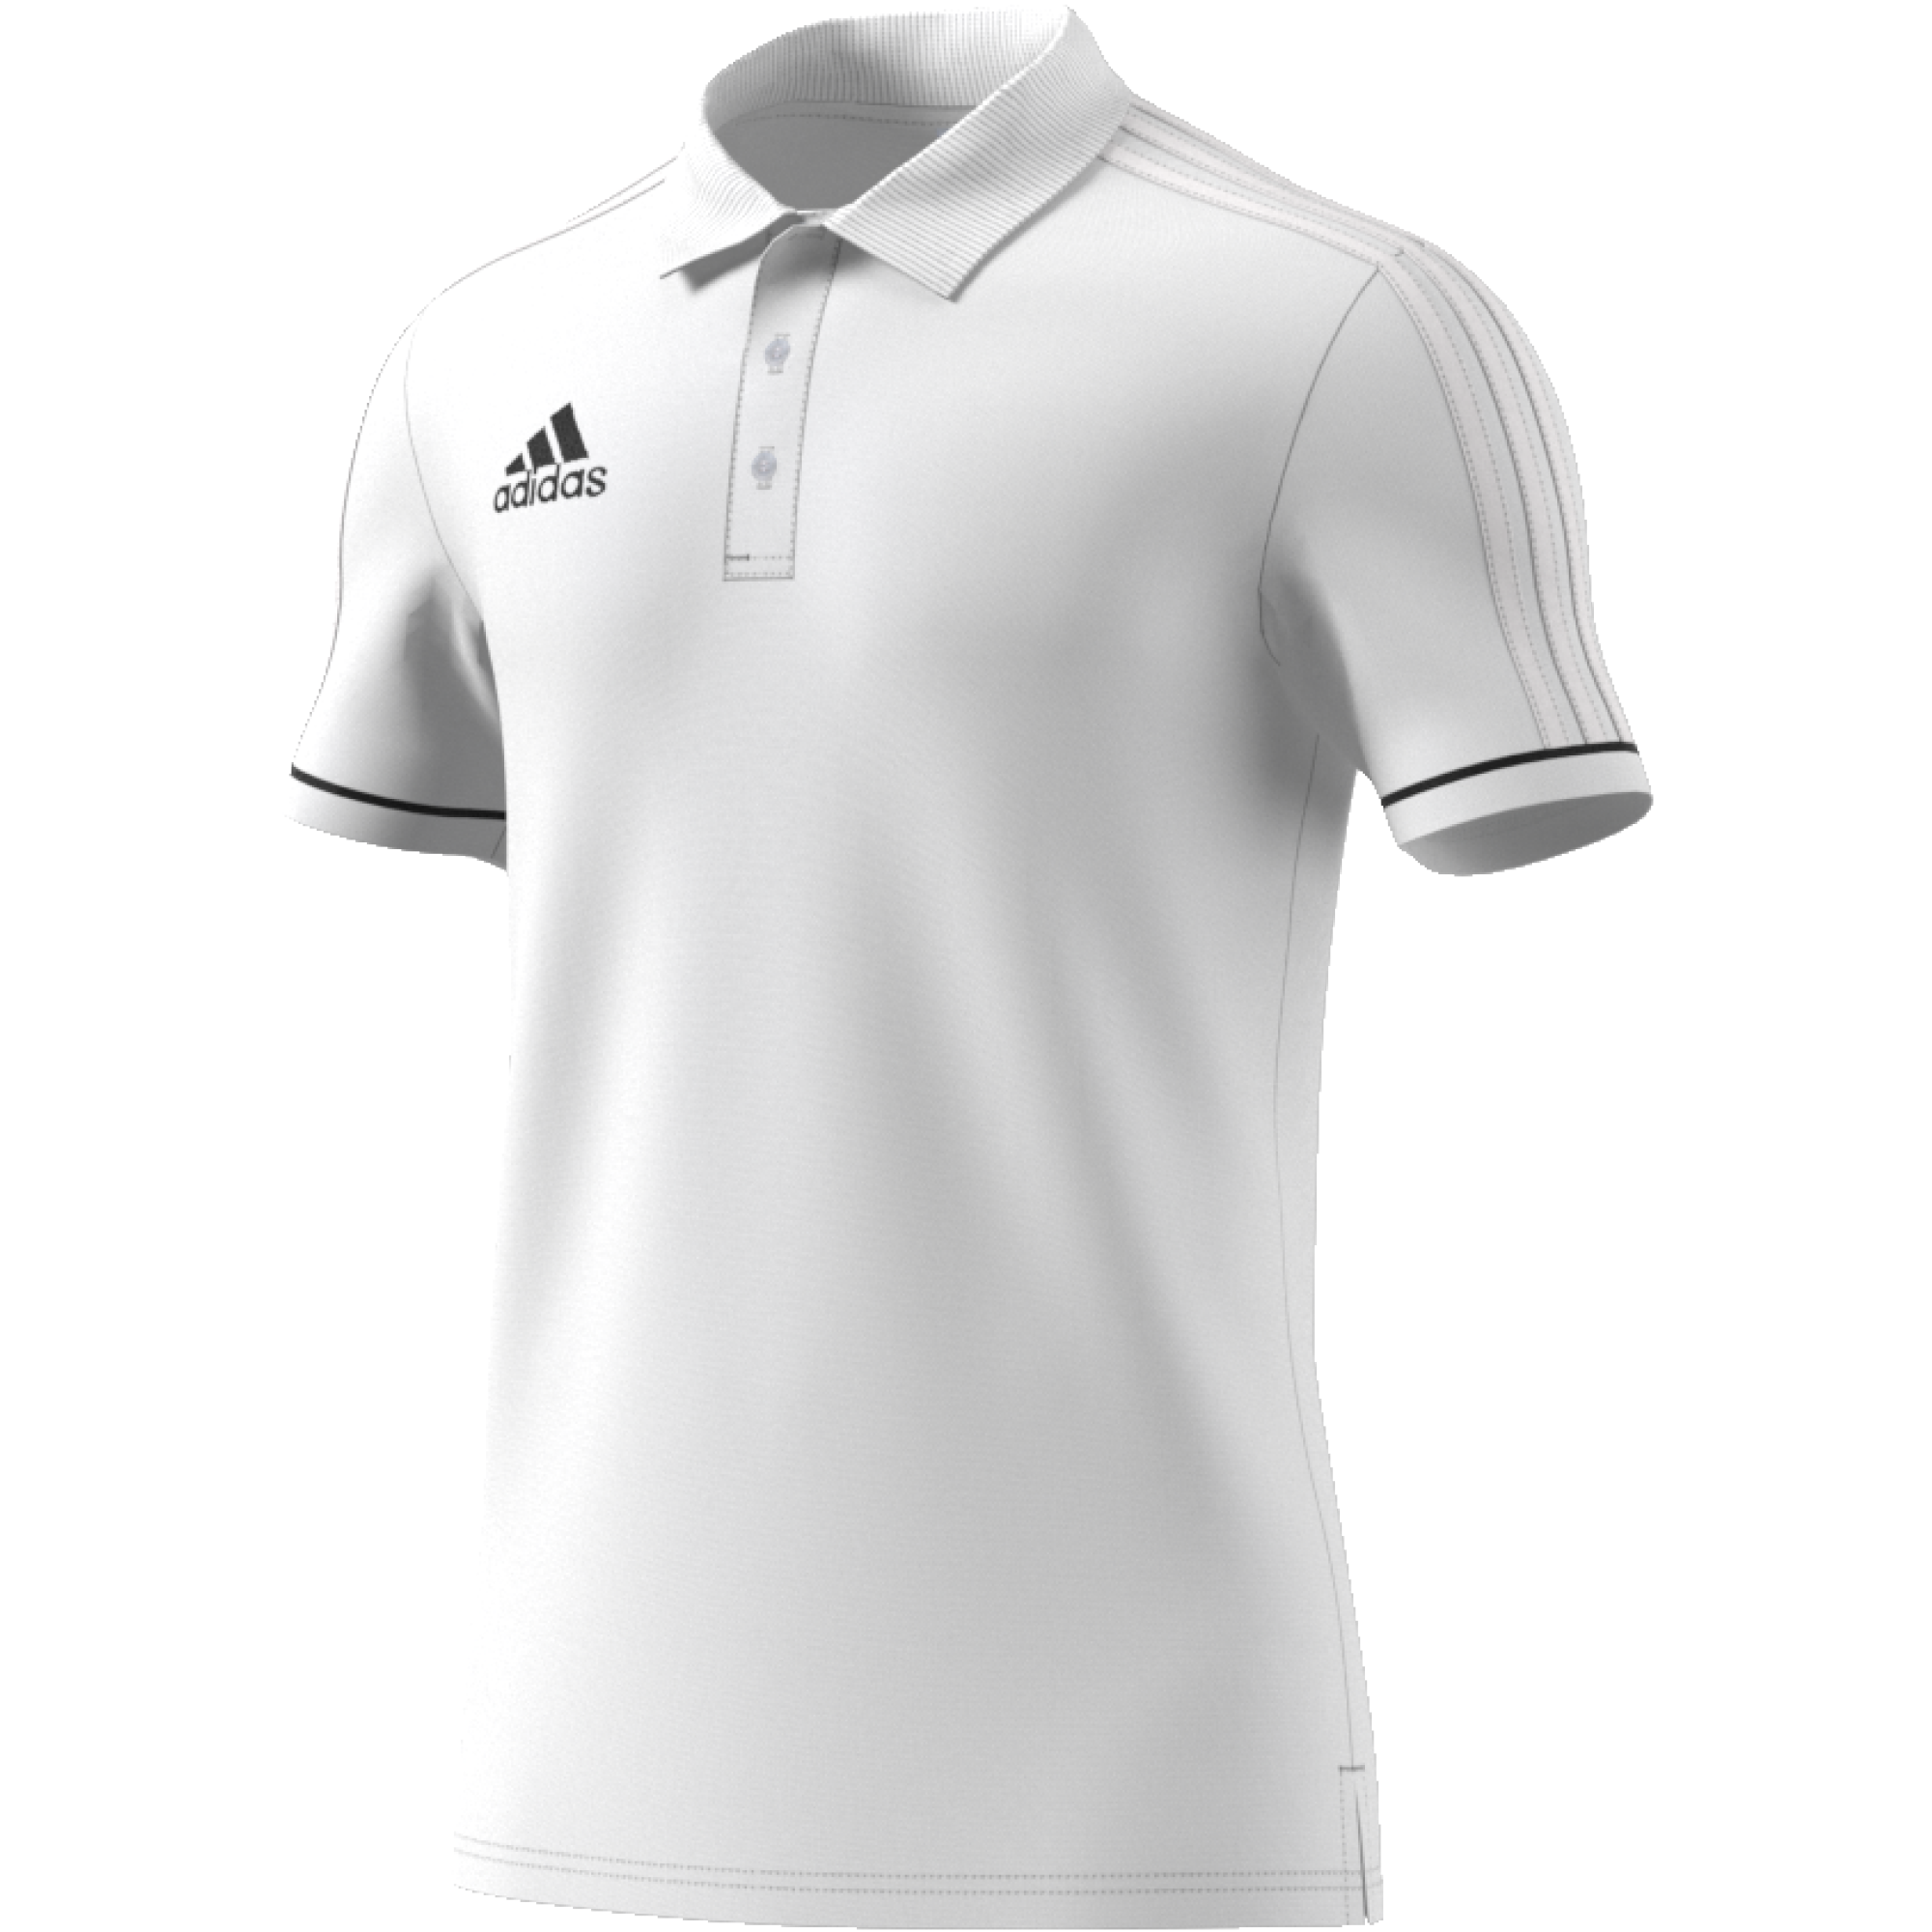 Bovingdon FC Adidas White Polo